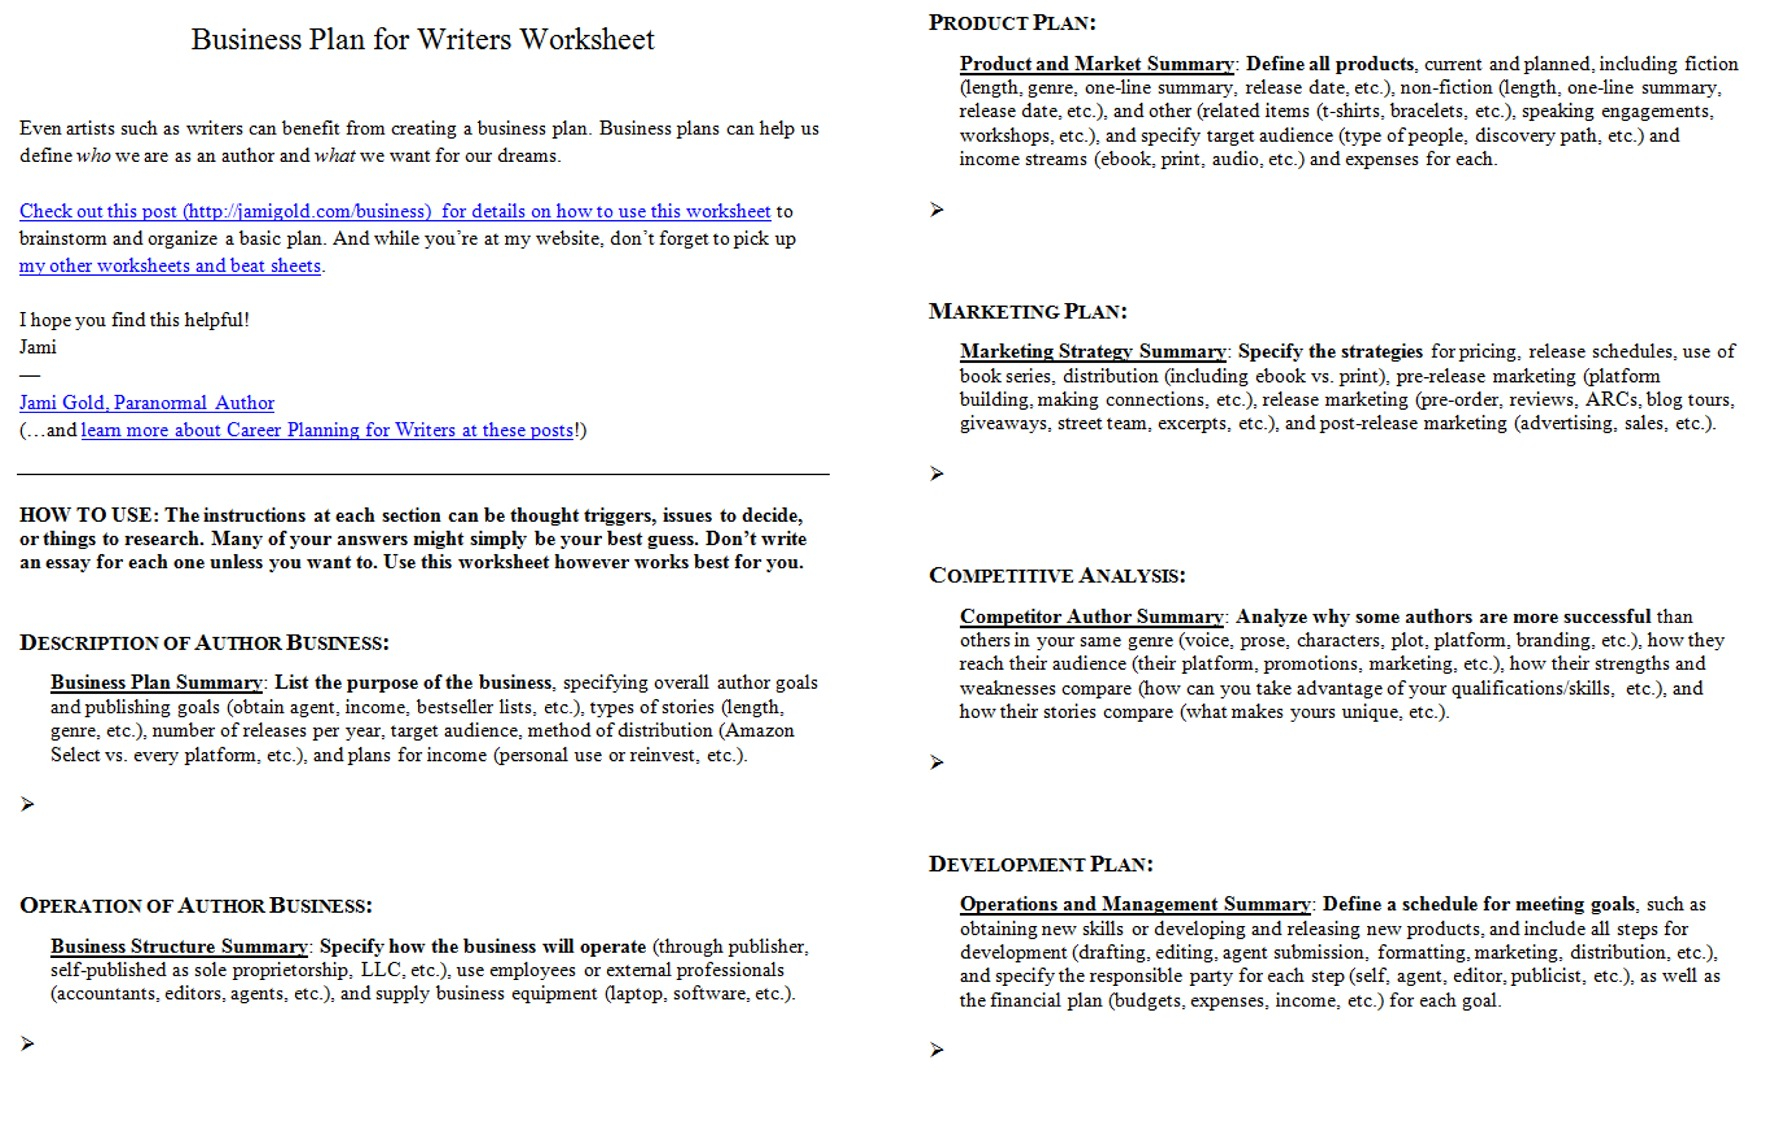 Weirdmailus  Wonderful Worksheets For Writers  Jami Gold Paranormal Author With Great Screen Shot Of Both Pages Of The Business Plan For Writers Worksheet With Cool Synonyms And Antonyms Worksheets High School Also Naming Alkenes And Alkynes Worksheet In Addition Daily Oral Language Worksheets And Rebus Word Puzzles Worksheet As Well As Thought Bubble Worksheet Additionally What Is A Friend Worksheet From Jamigoldcom With Weirdmailus  Great Worksheets For Writers  Jami Gold Paranormal Author With Cool Screen Shot Of Both Pages Of The Business Plan For Writers Worksheet And Wonderful Synonyms And Antonyms Worksheets High School Also Naming Alkenes And Alkynes Worksheet In Addition Daily Oral Language Worksheets From Jamigoldcom